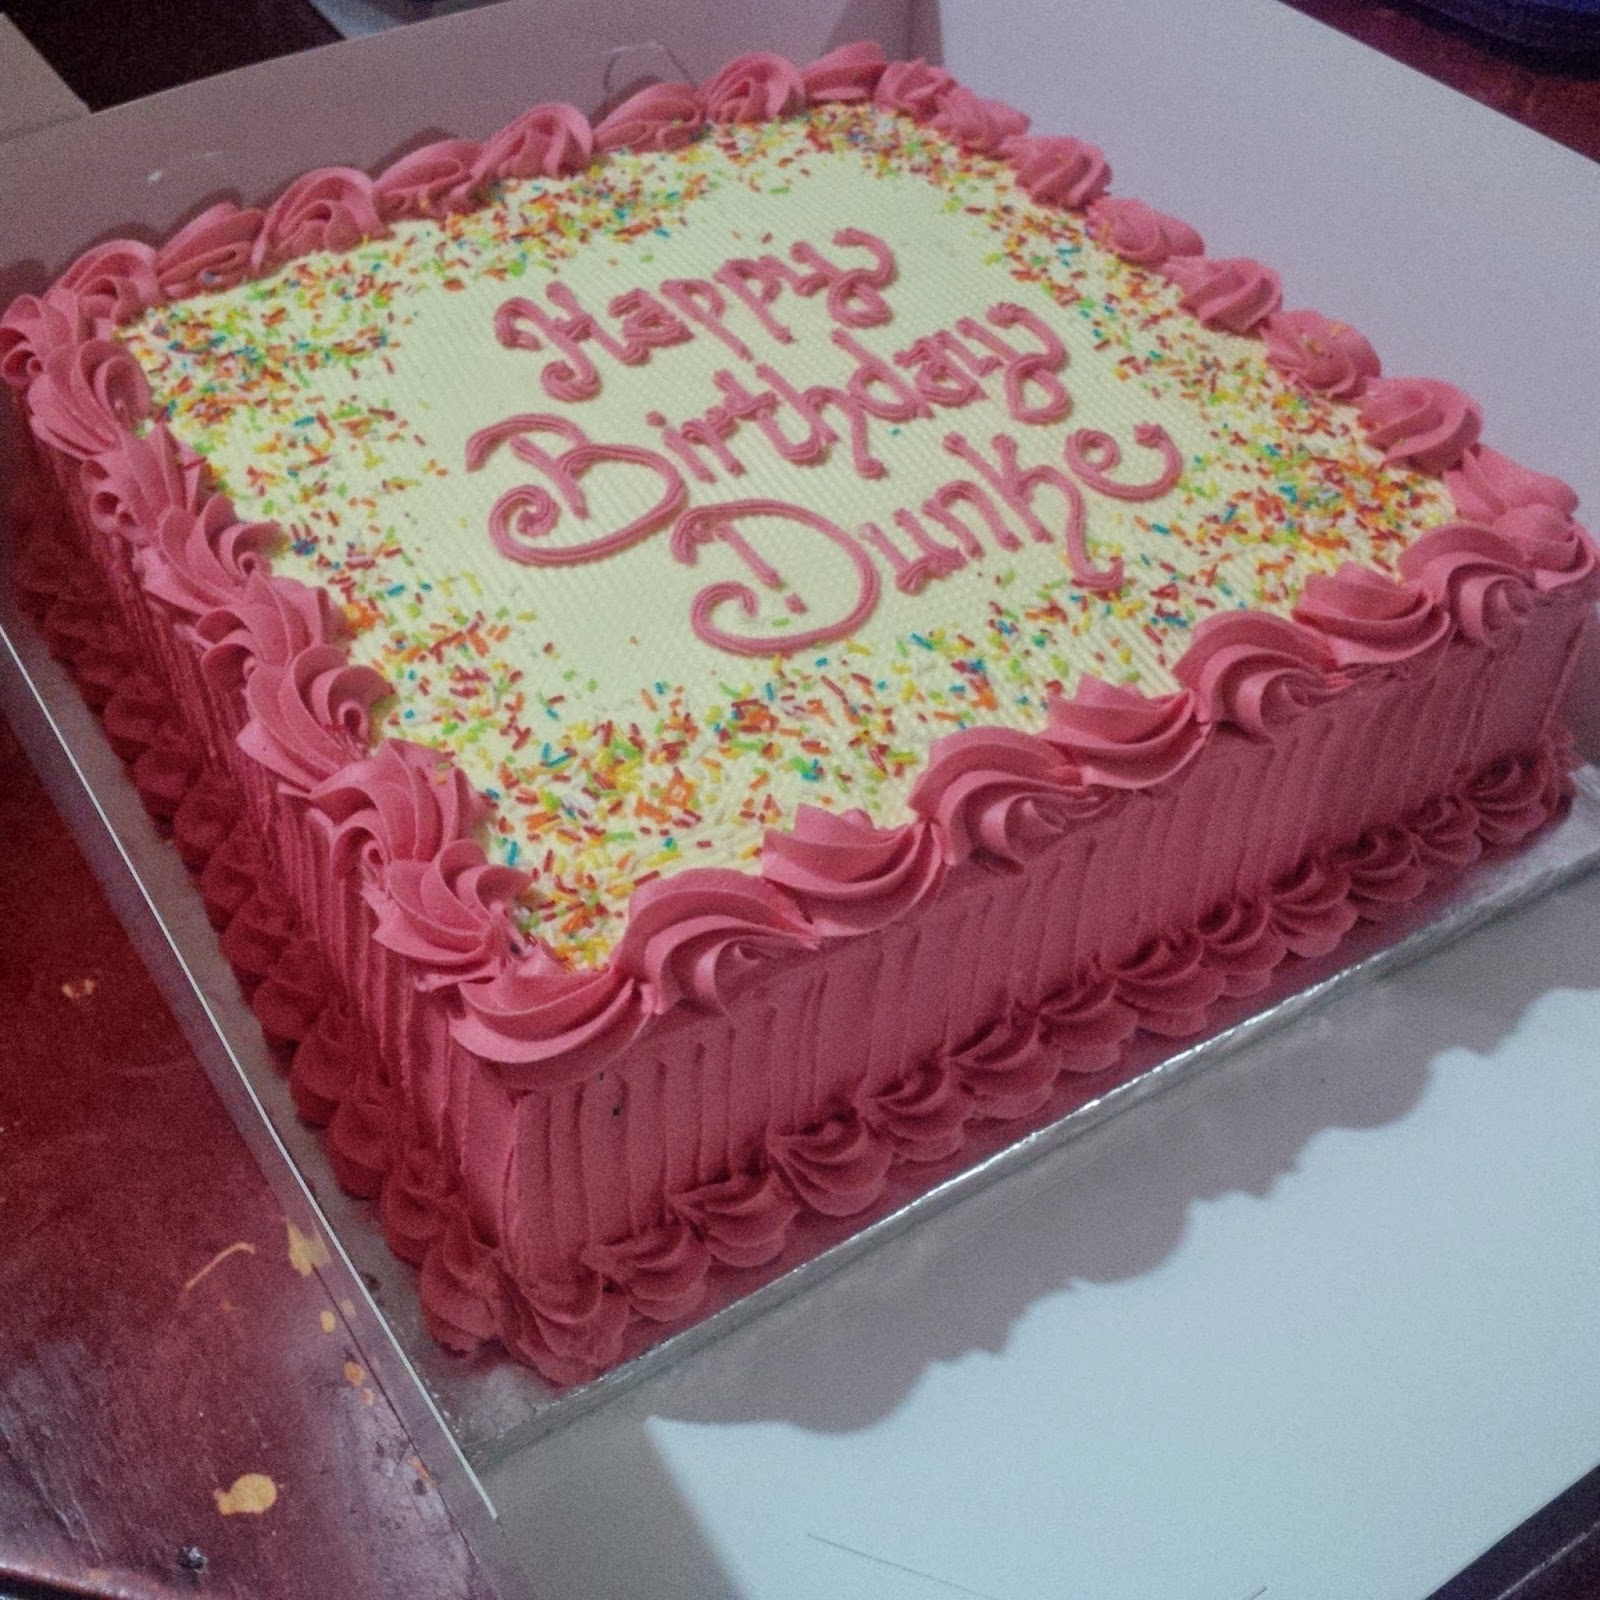 Cake Icing Ideas Birthday : This is My Gistertainment: Cakes by Creamy Delight Cakes